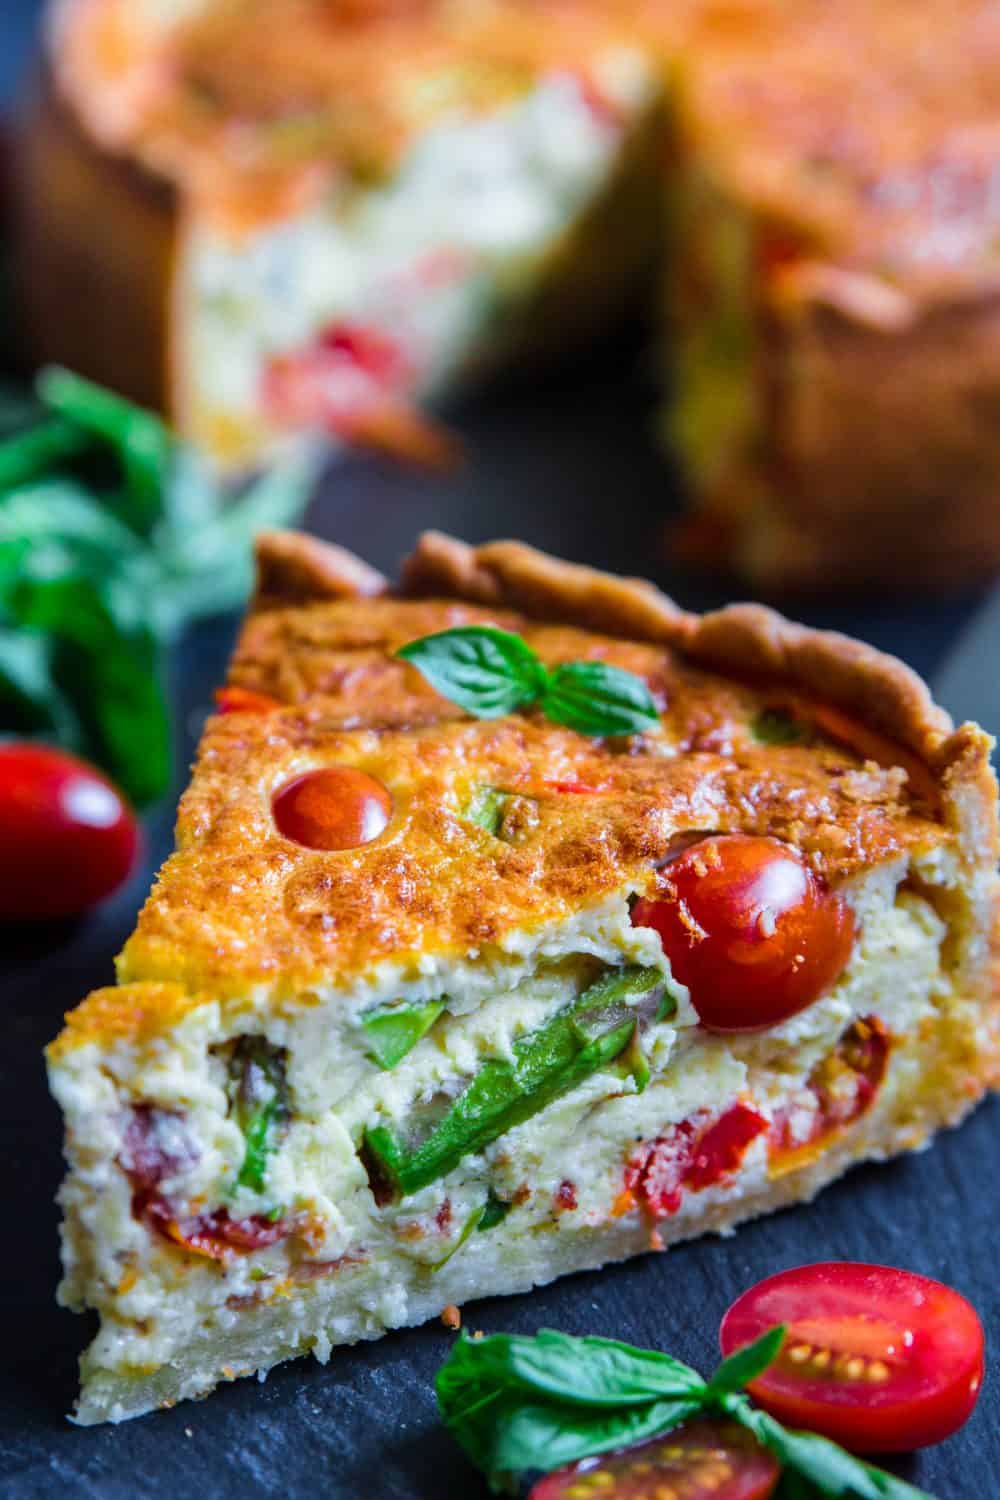 close up image of homemade quiche lorraine that is filled with spring vegetables like asparagus, tomatoes, and bacon